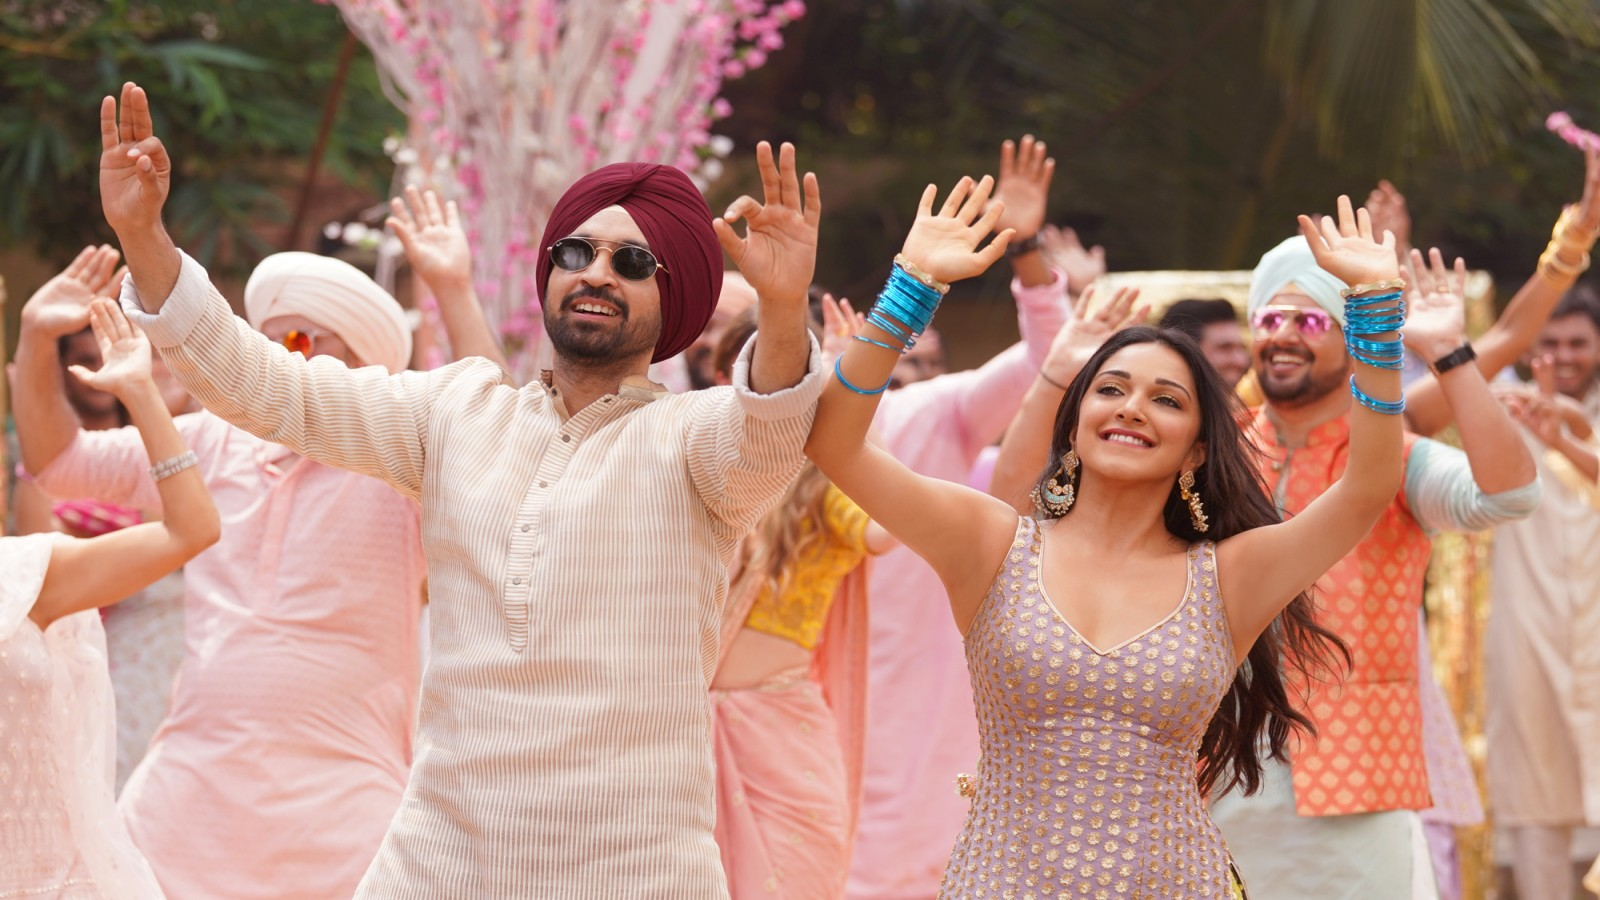 Diljit Dosanjh (as Honey) and Kiara Advani (as Moni) are the proverbial Chandigarh couple who dances with delightful abandon at every opportunity. Photo Courtesy: Zee Studios